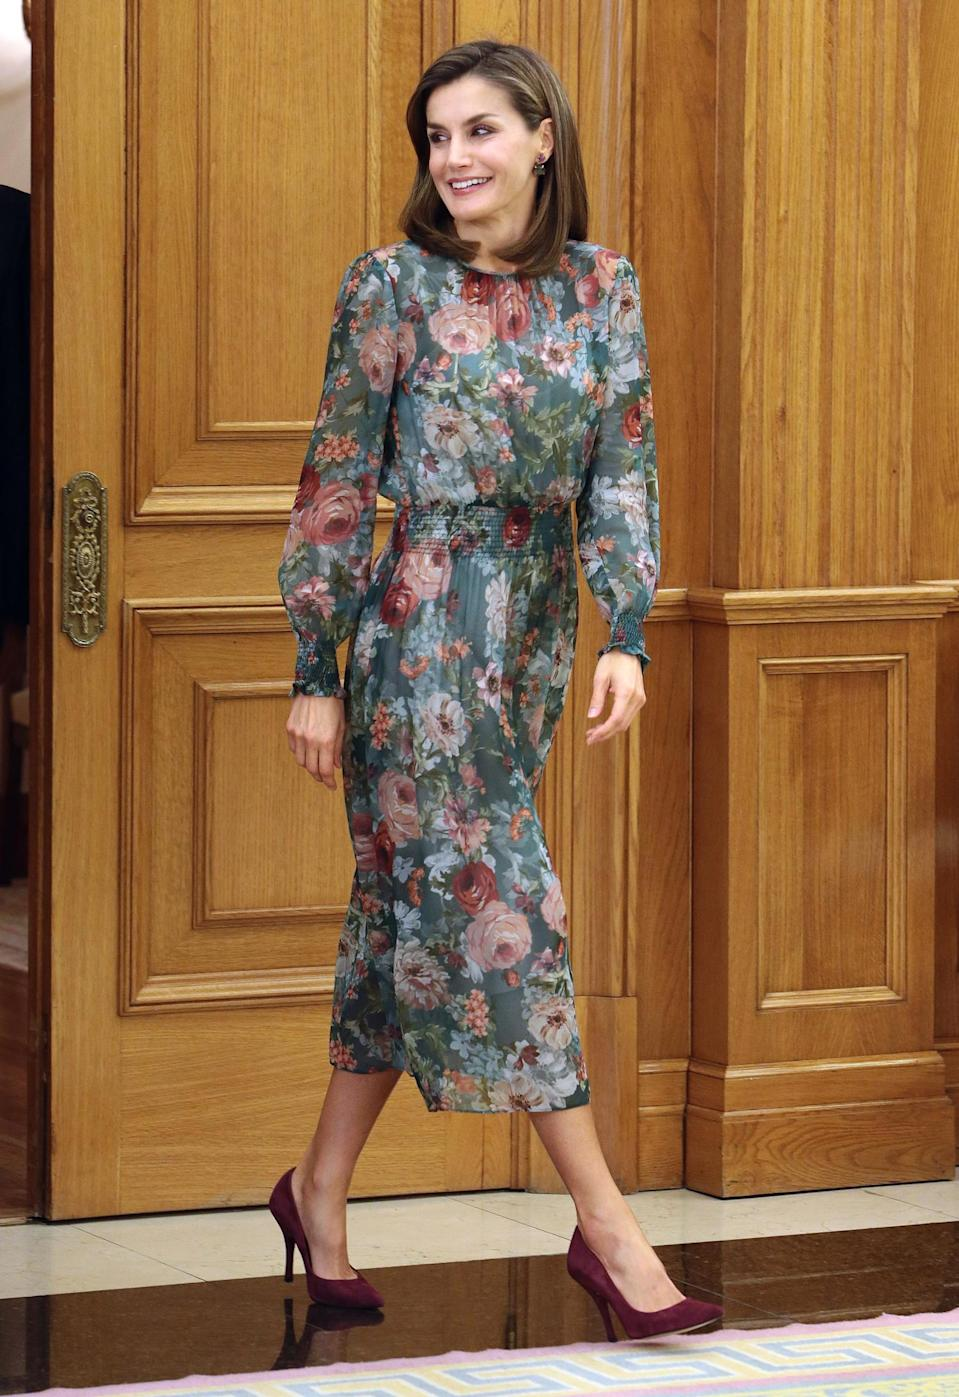 Queen Letizia of Spain in her Zara dress at Zarzuela Palace. (Photo: Getty Images)